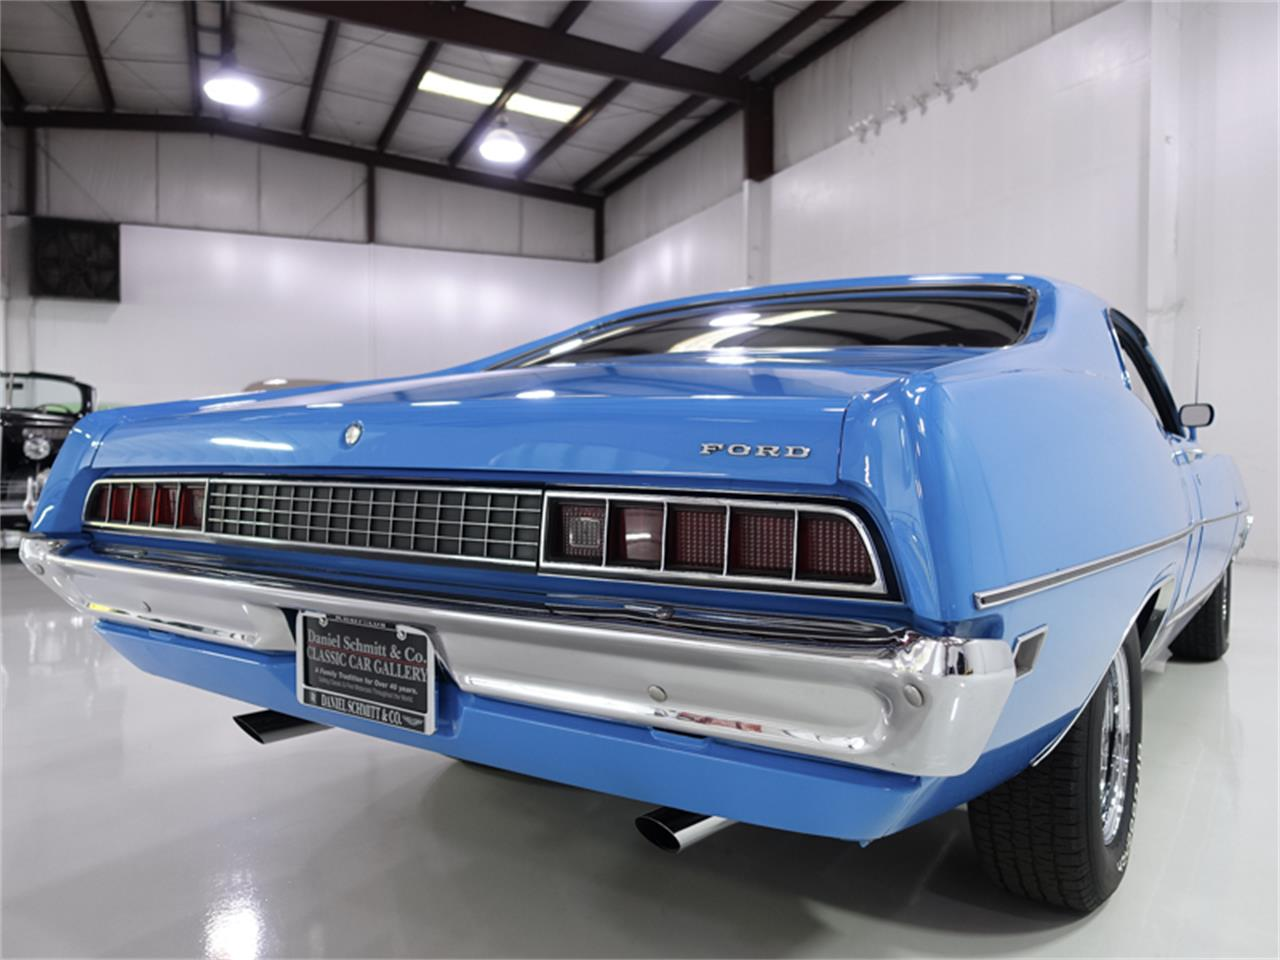 Large Picture of 1970 Ford Torino Offered by Daniel Schmitt & Co. - MSON